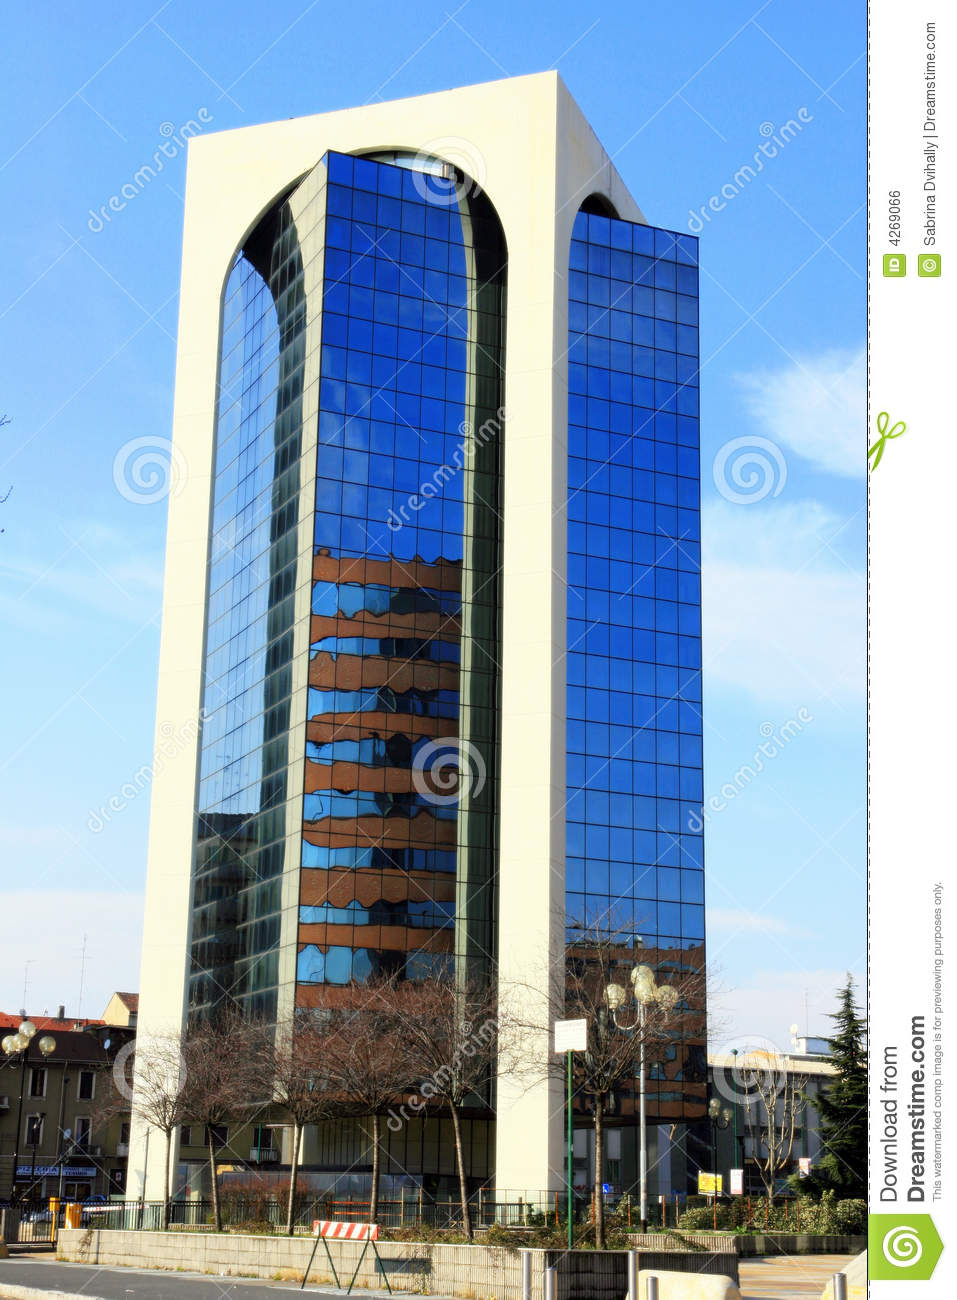 Modern business building royalty free stock image image for Modern business building design